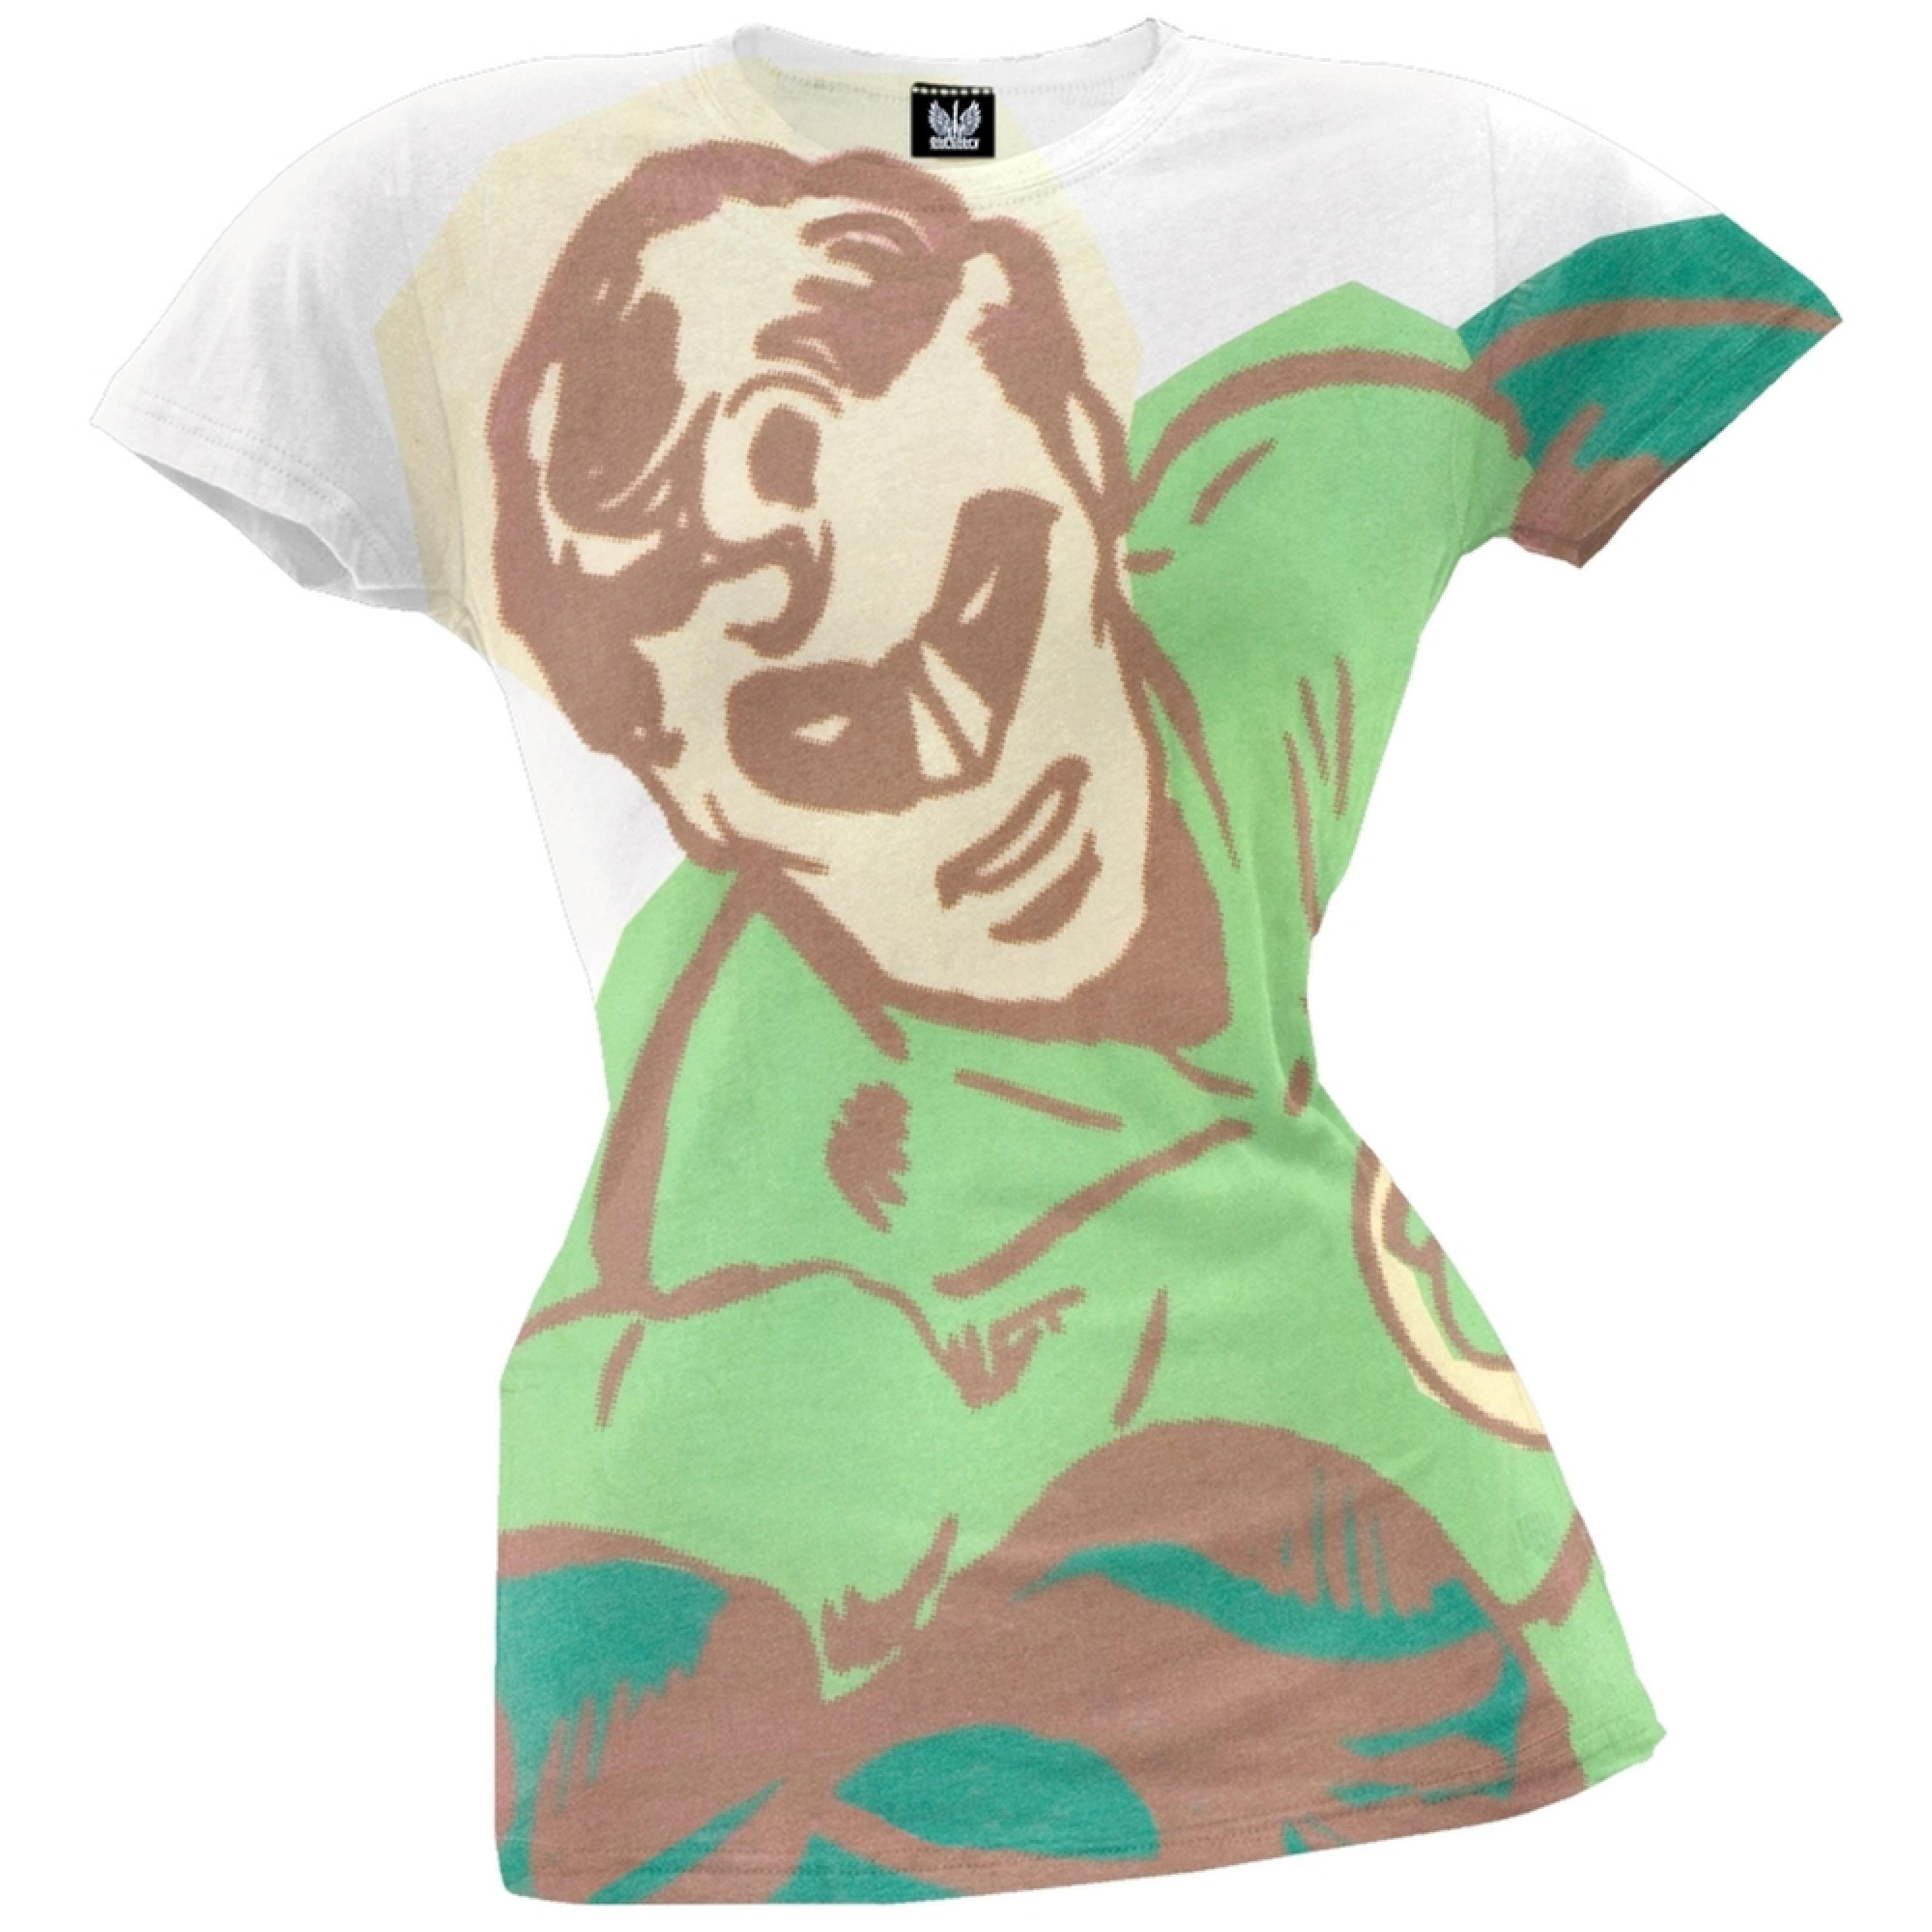 Green Lantern - Green Suave Juniors T-Shirt